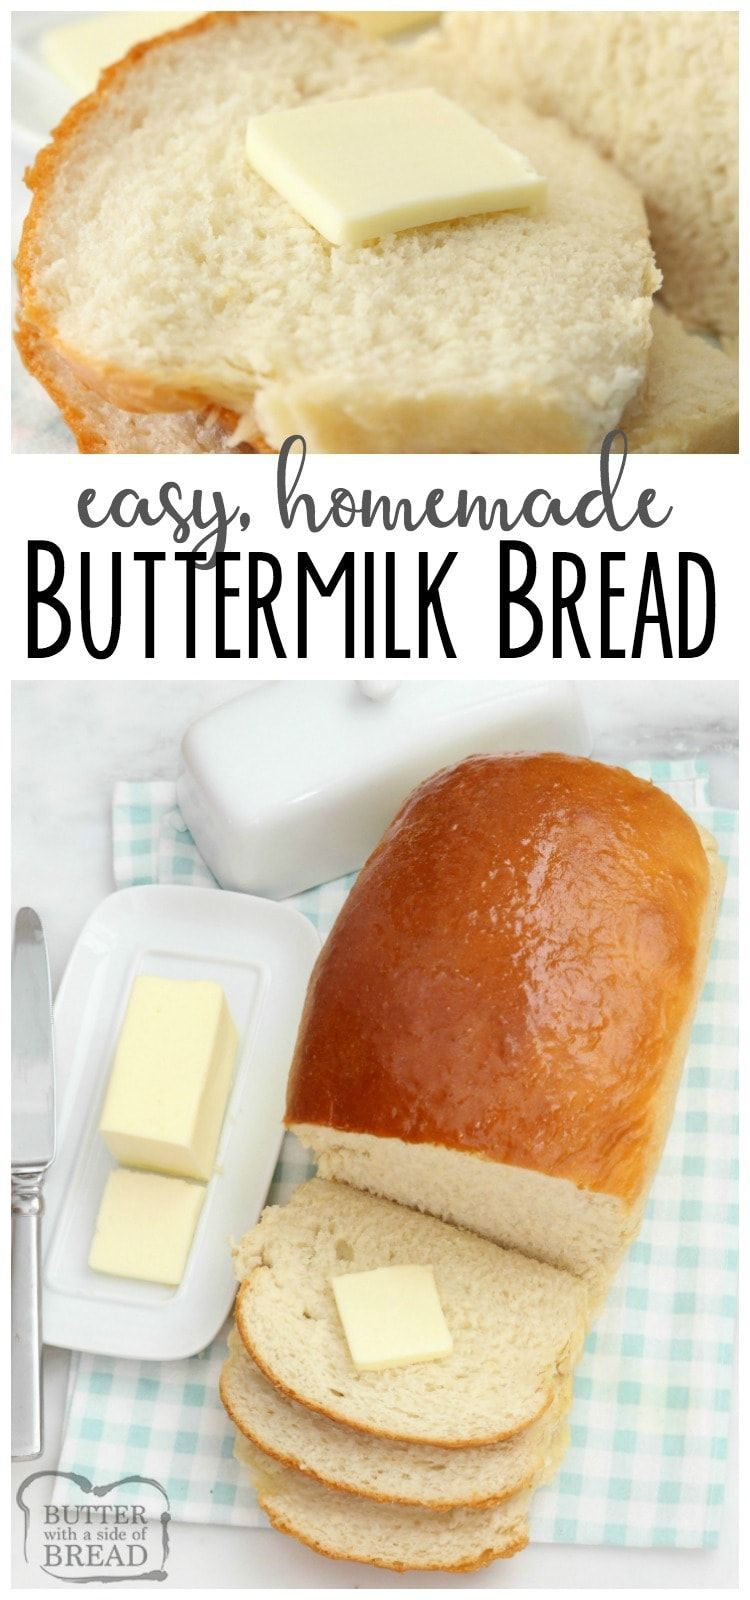 Buttermilk Bread Baked Fresh In Your Kitchen With This Easy Recipe This Recipe For Homemade Bread Is Buttermilk Recipes Bread Maker Recipes Dog Cake Recipes